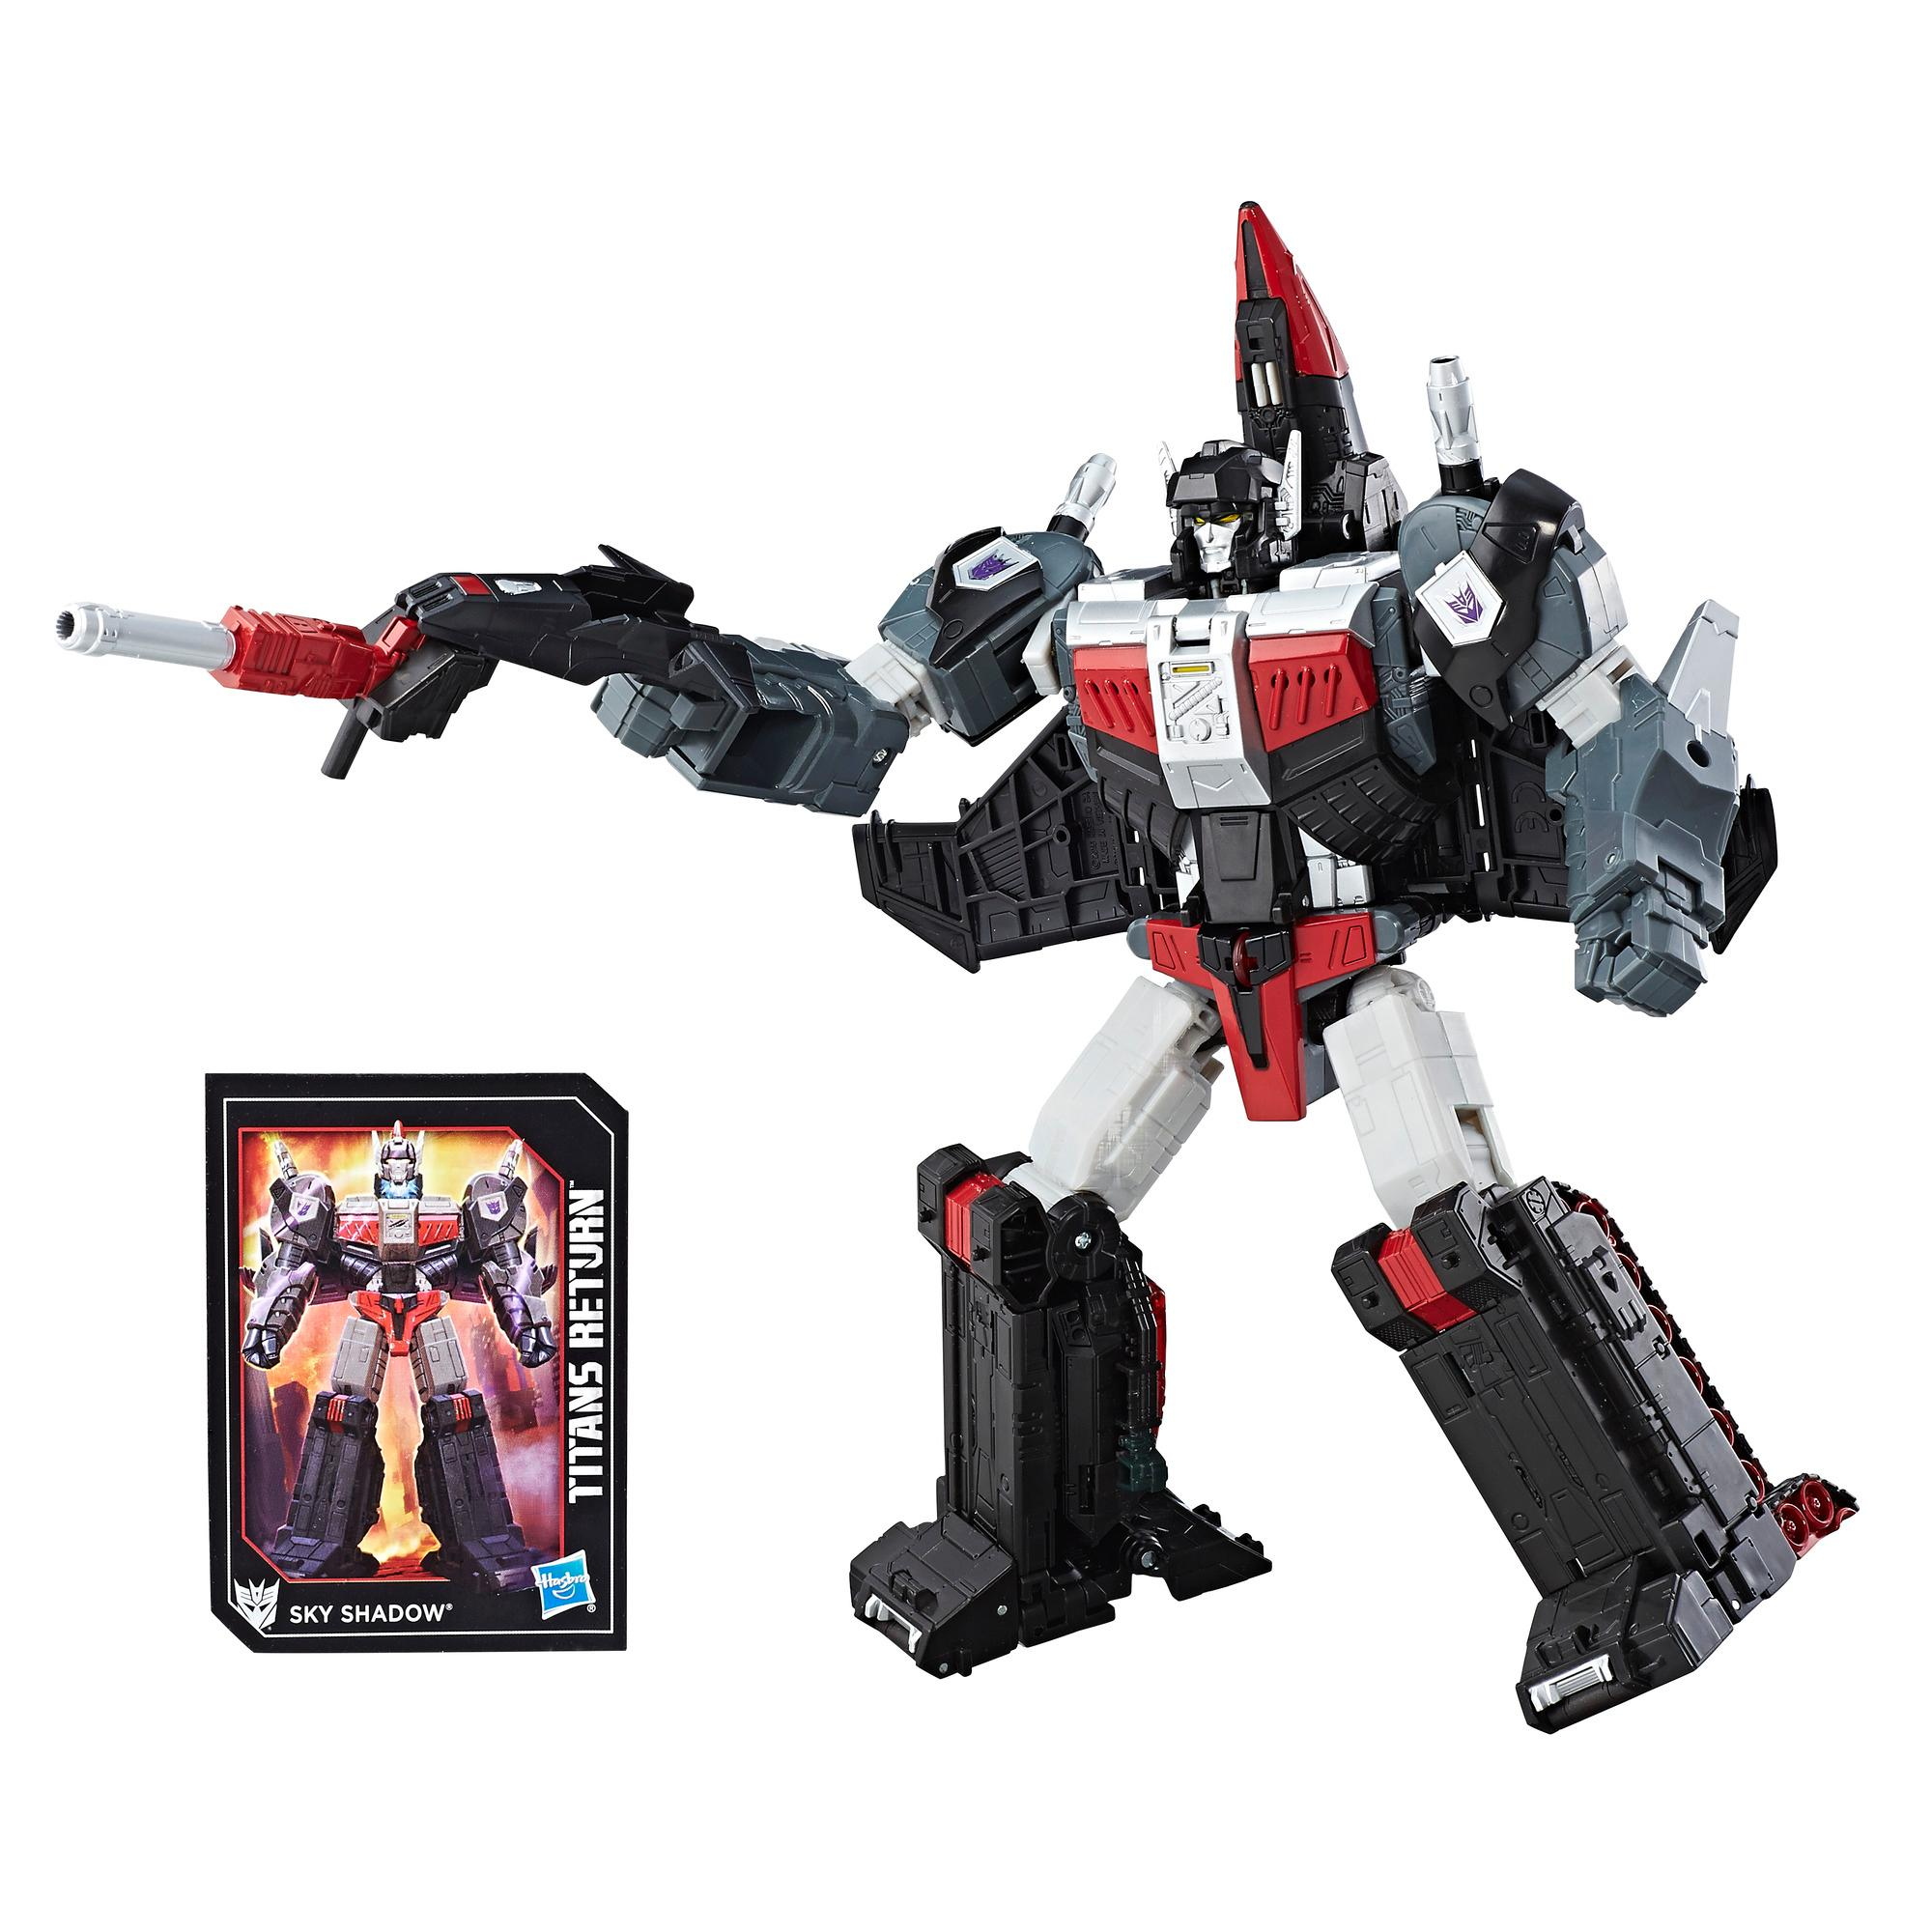 Transformers Generations Titans Return Leader SKY SHADOW